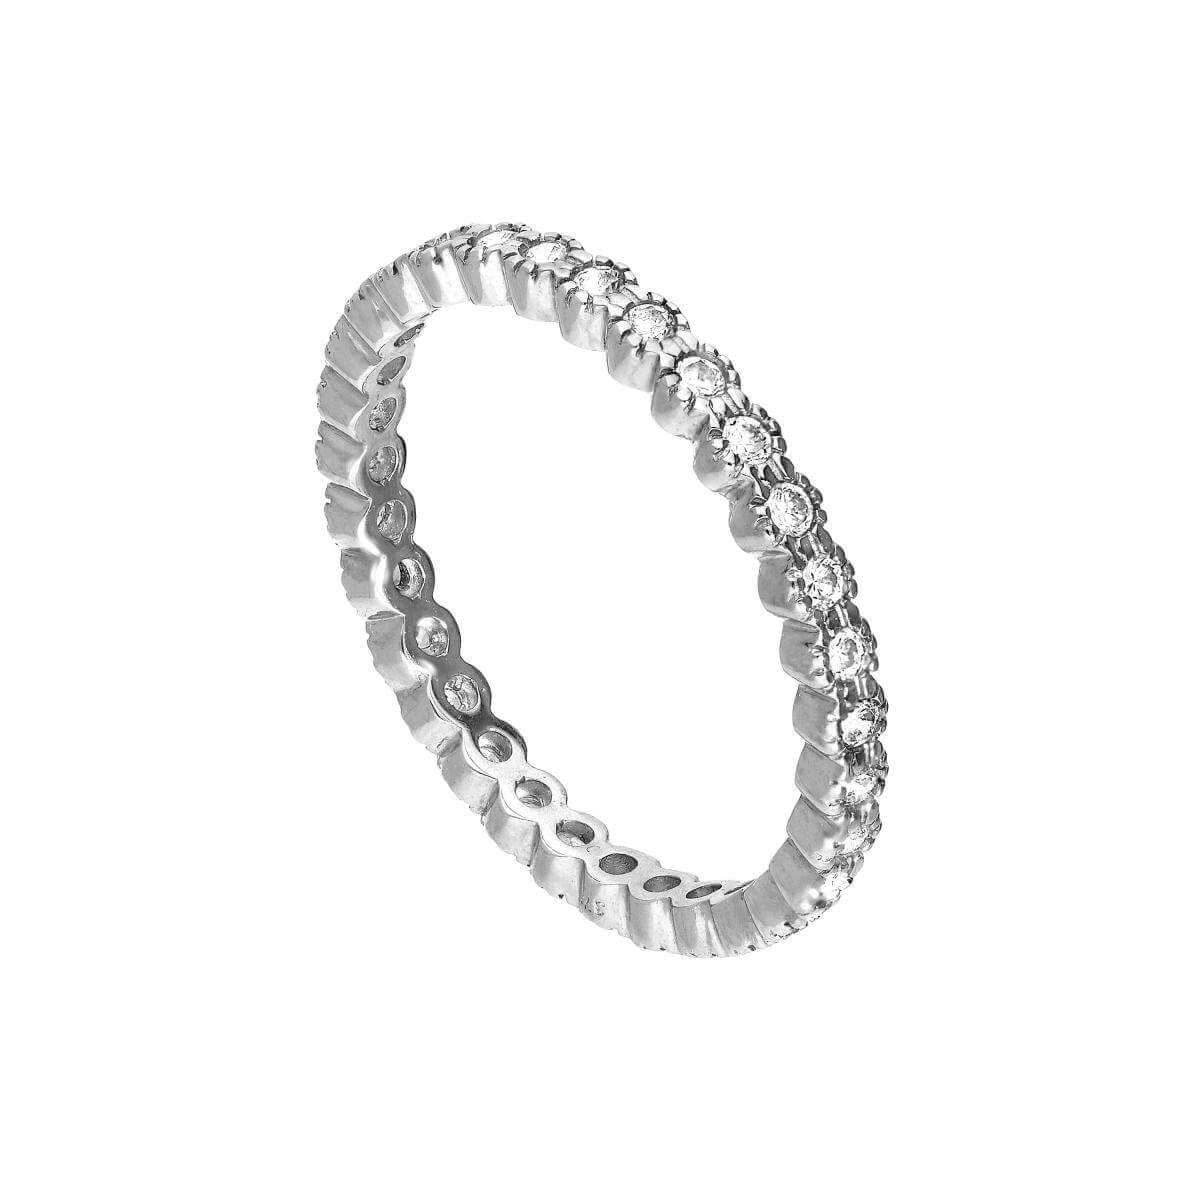 9ct White Gold & Clear CZ Crystal Full Eternity Stacking Ring Size I-U